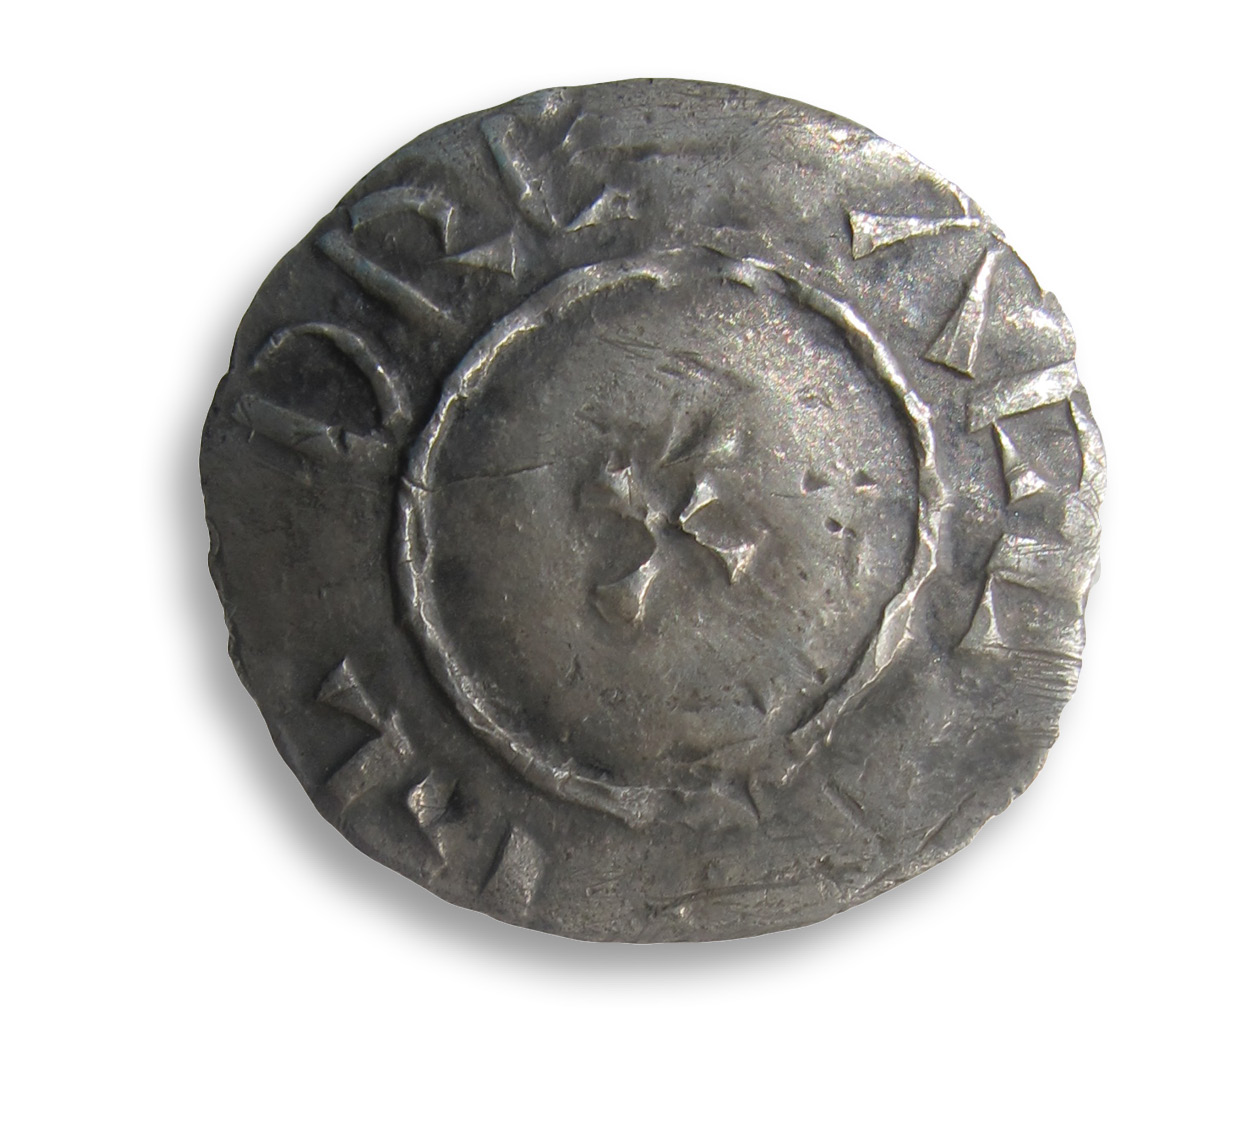 BELOW The latest coin in the hoard: this two-line-type penny of Alfred the Great provides a depositional date for the whole assemblage of c.AD 879.